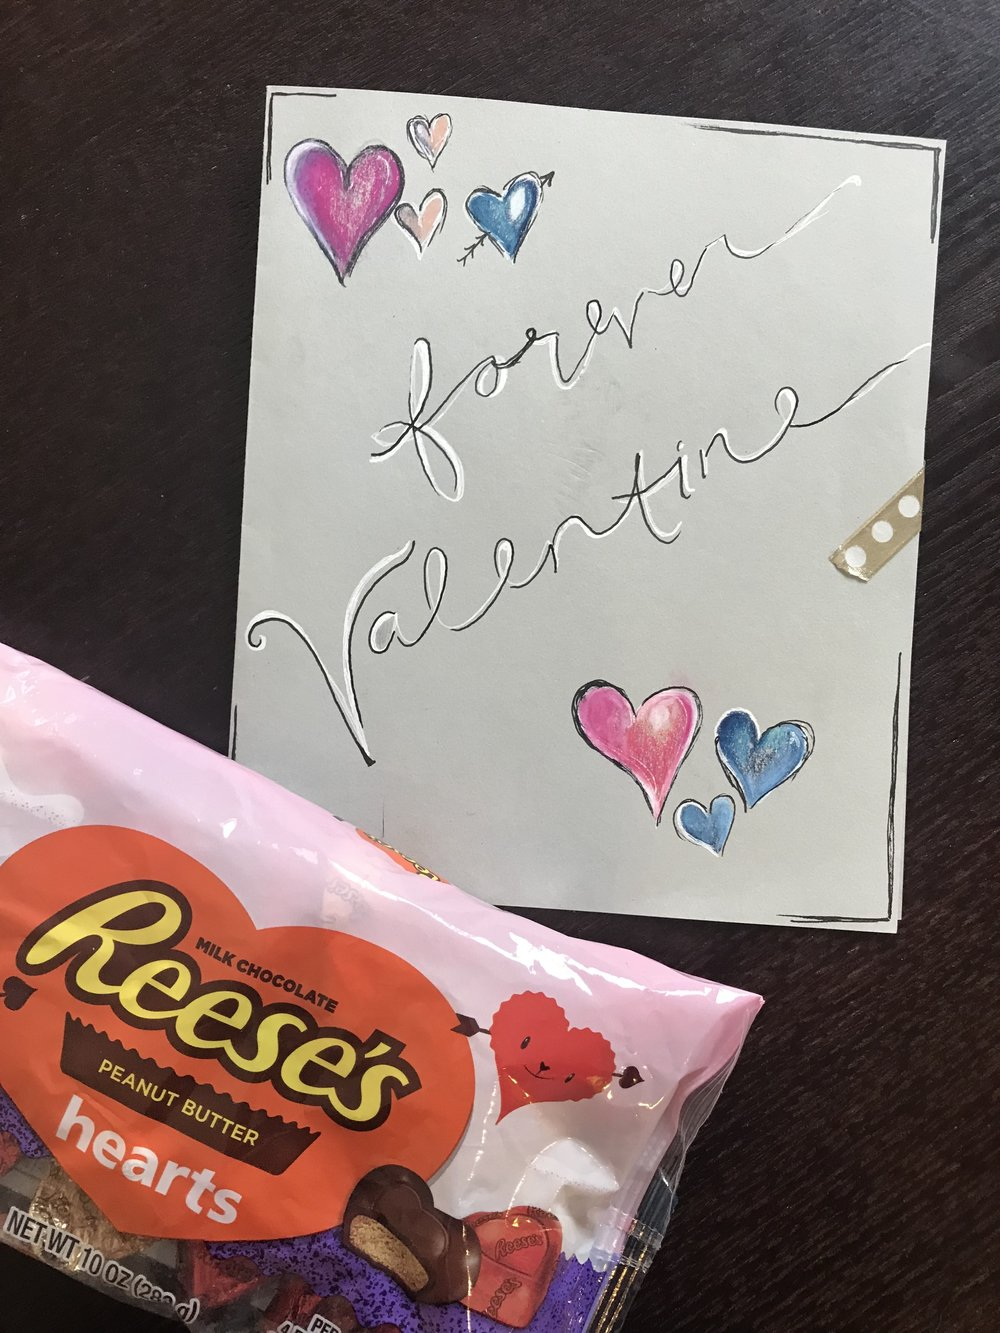 The card I made for Nick this year <3 and of course his favorites, Reese's.